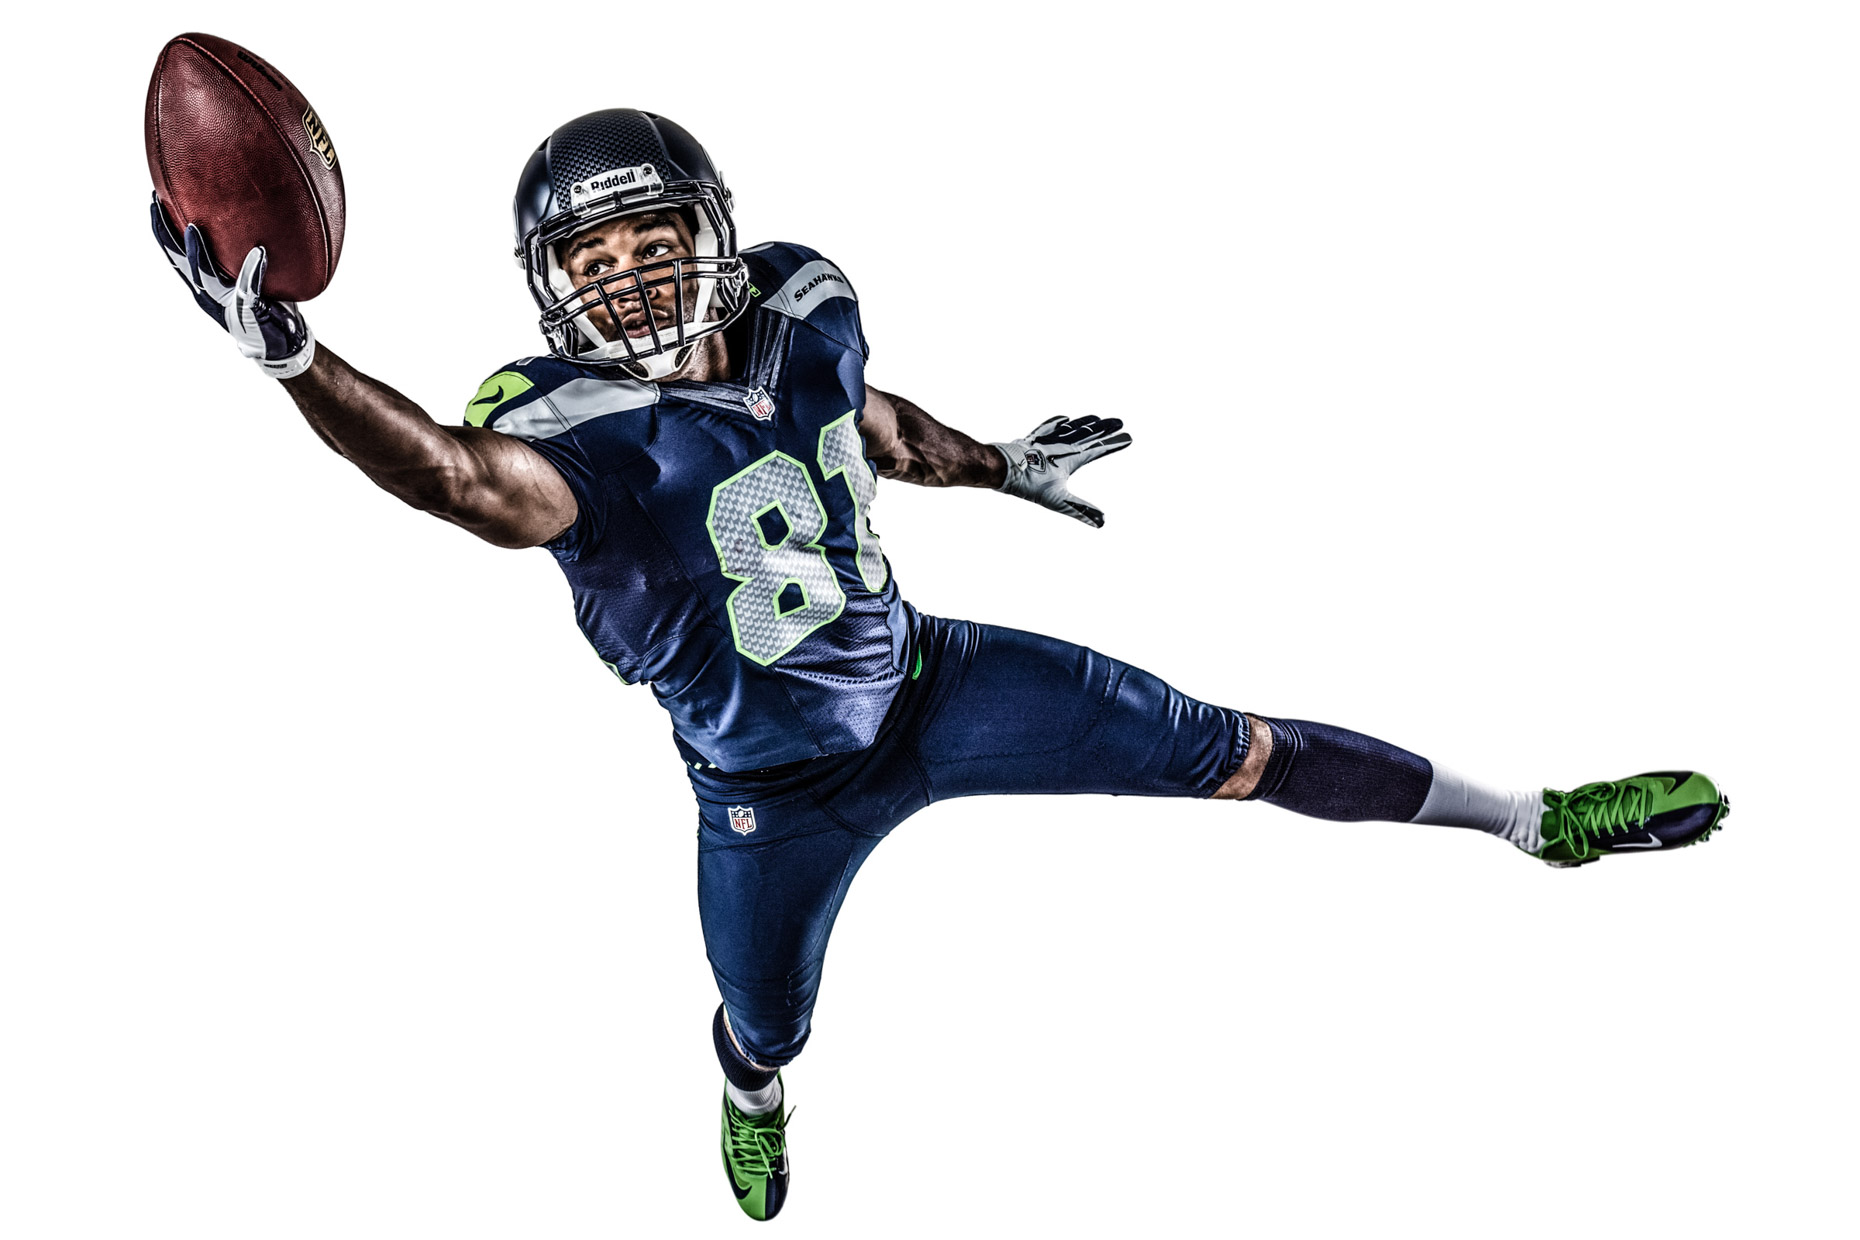 NFL player Golden Tate by sport photographer Andy Batt.